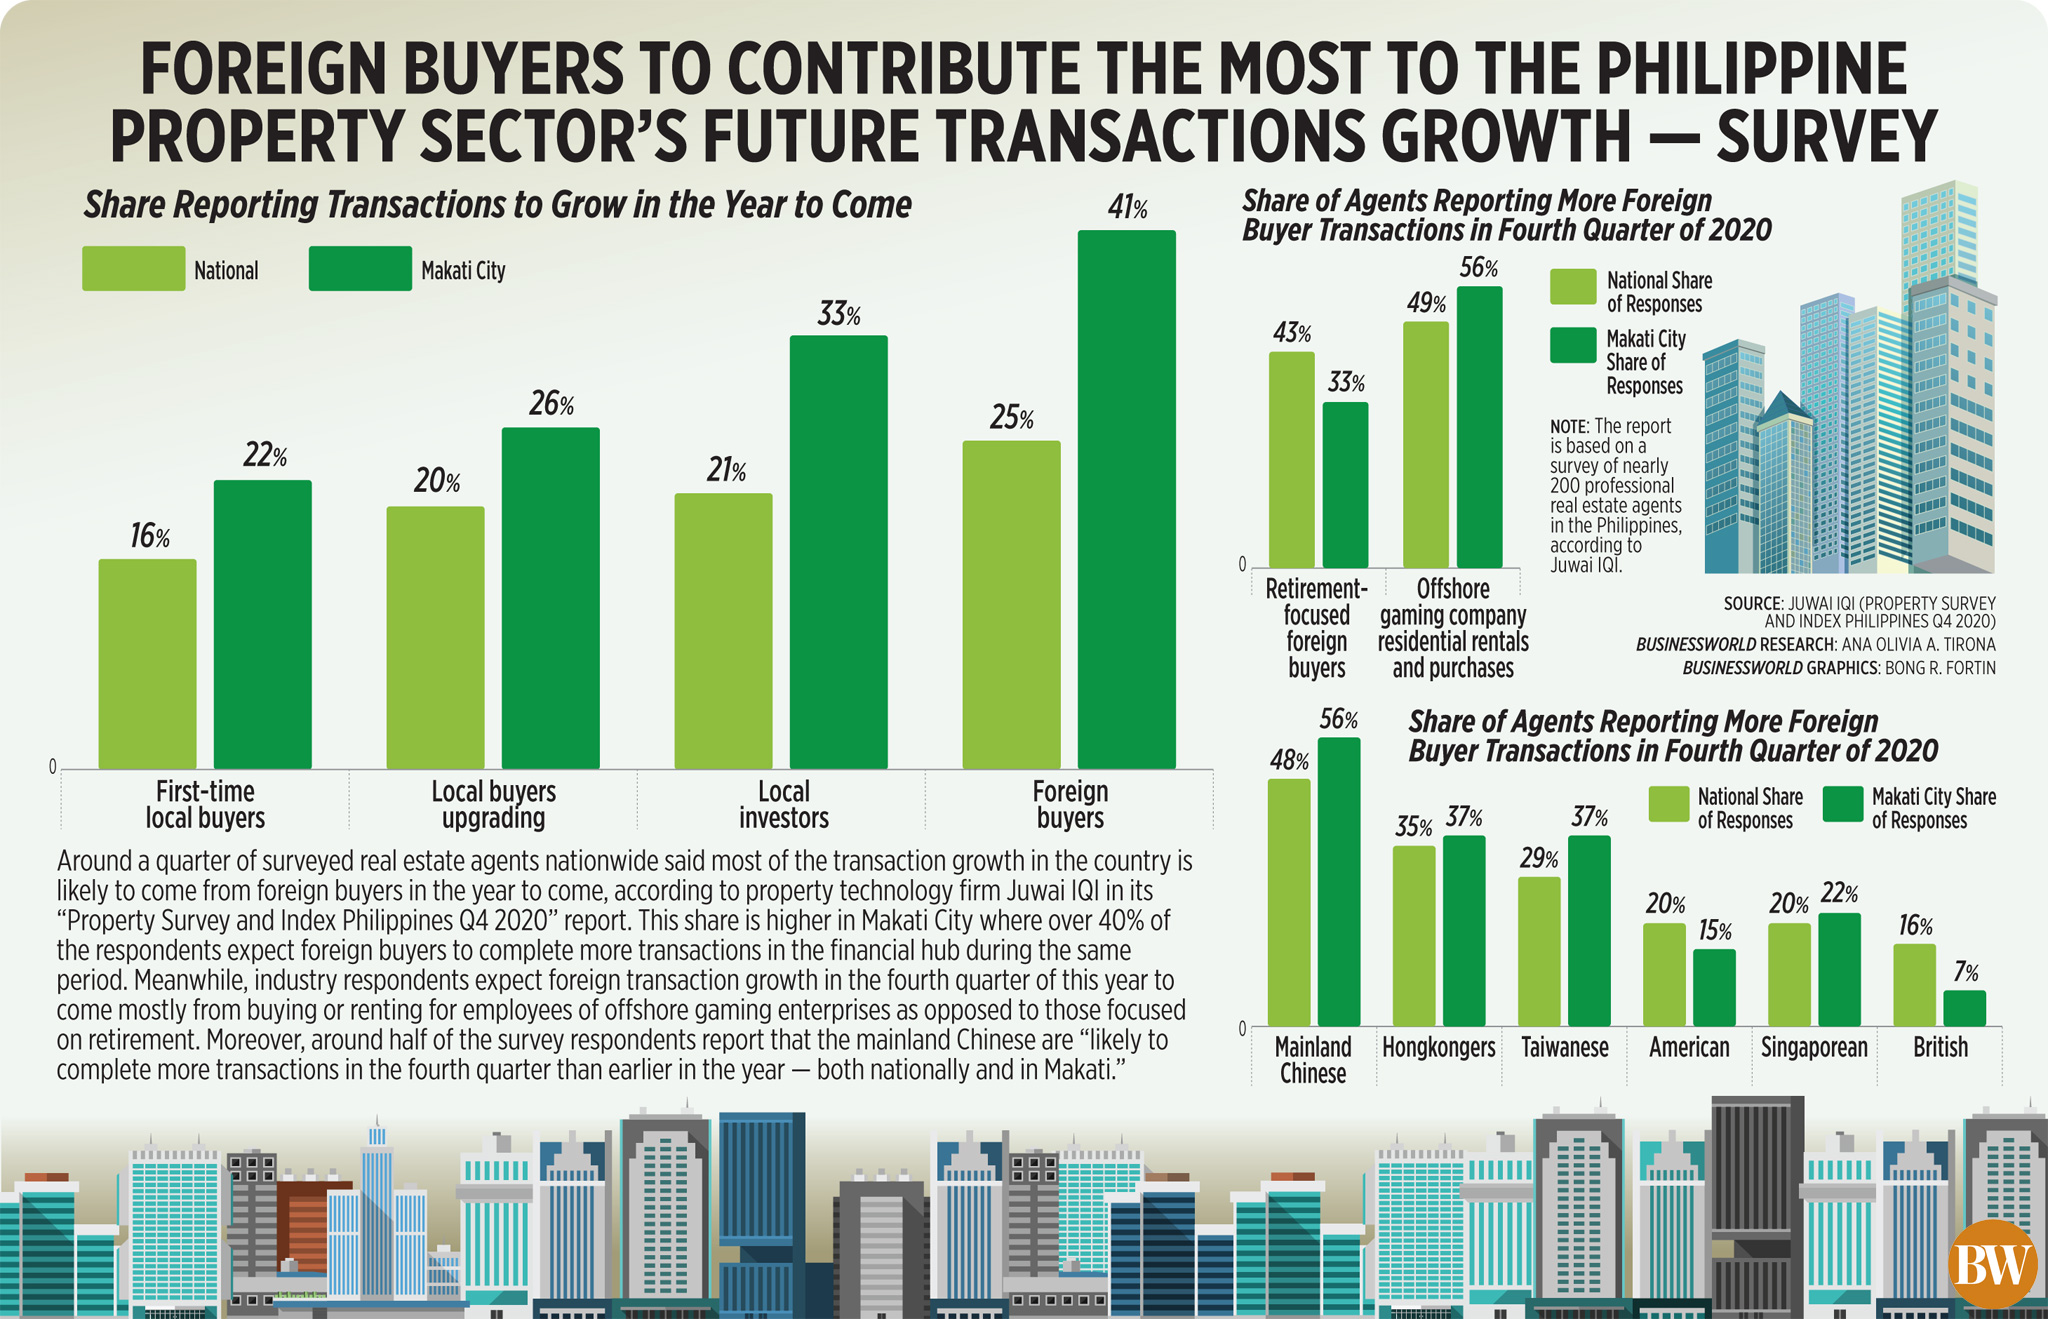 Foreign buyers to contribute the most to the Philippine property sector's future transactions growth — survey